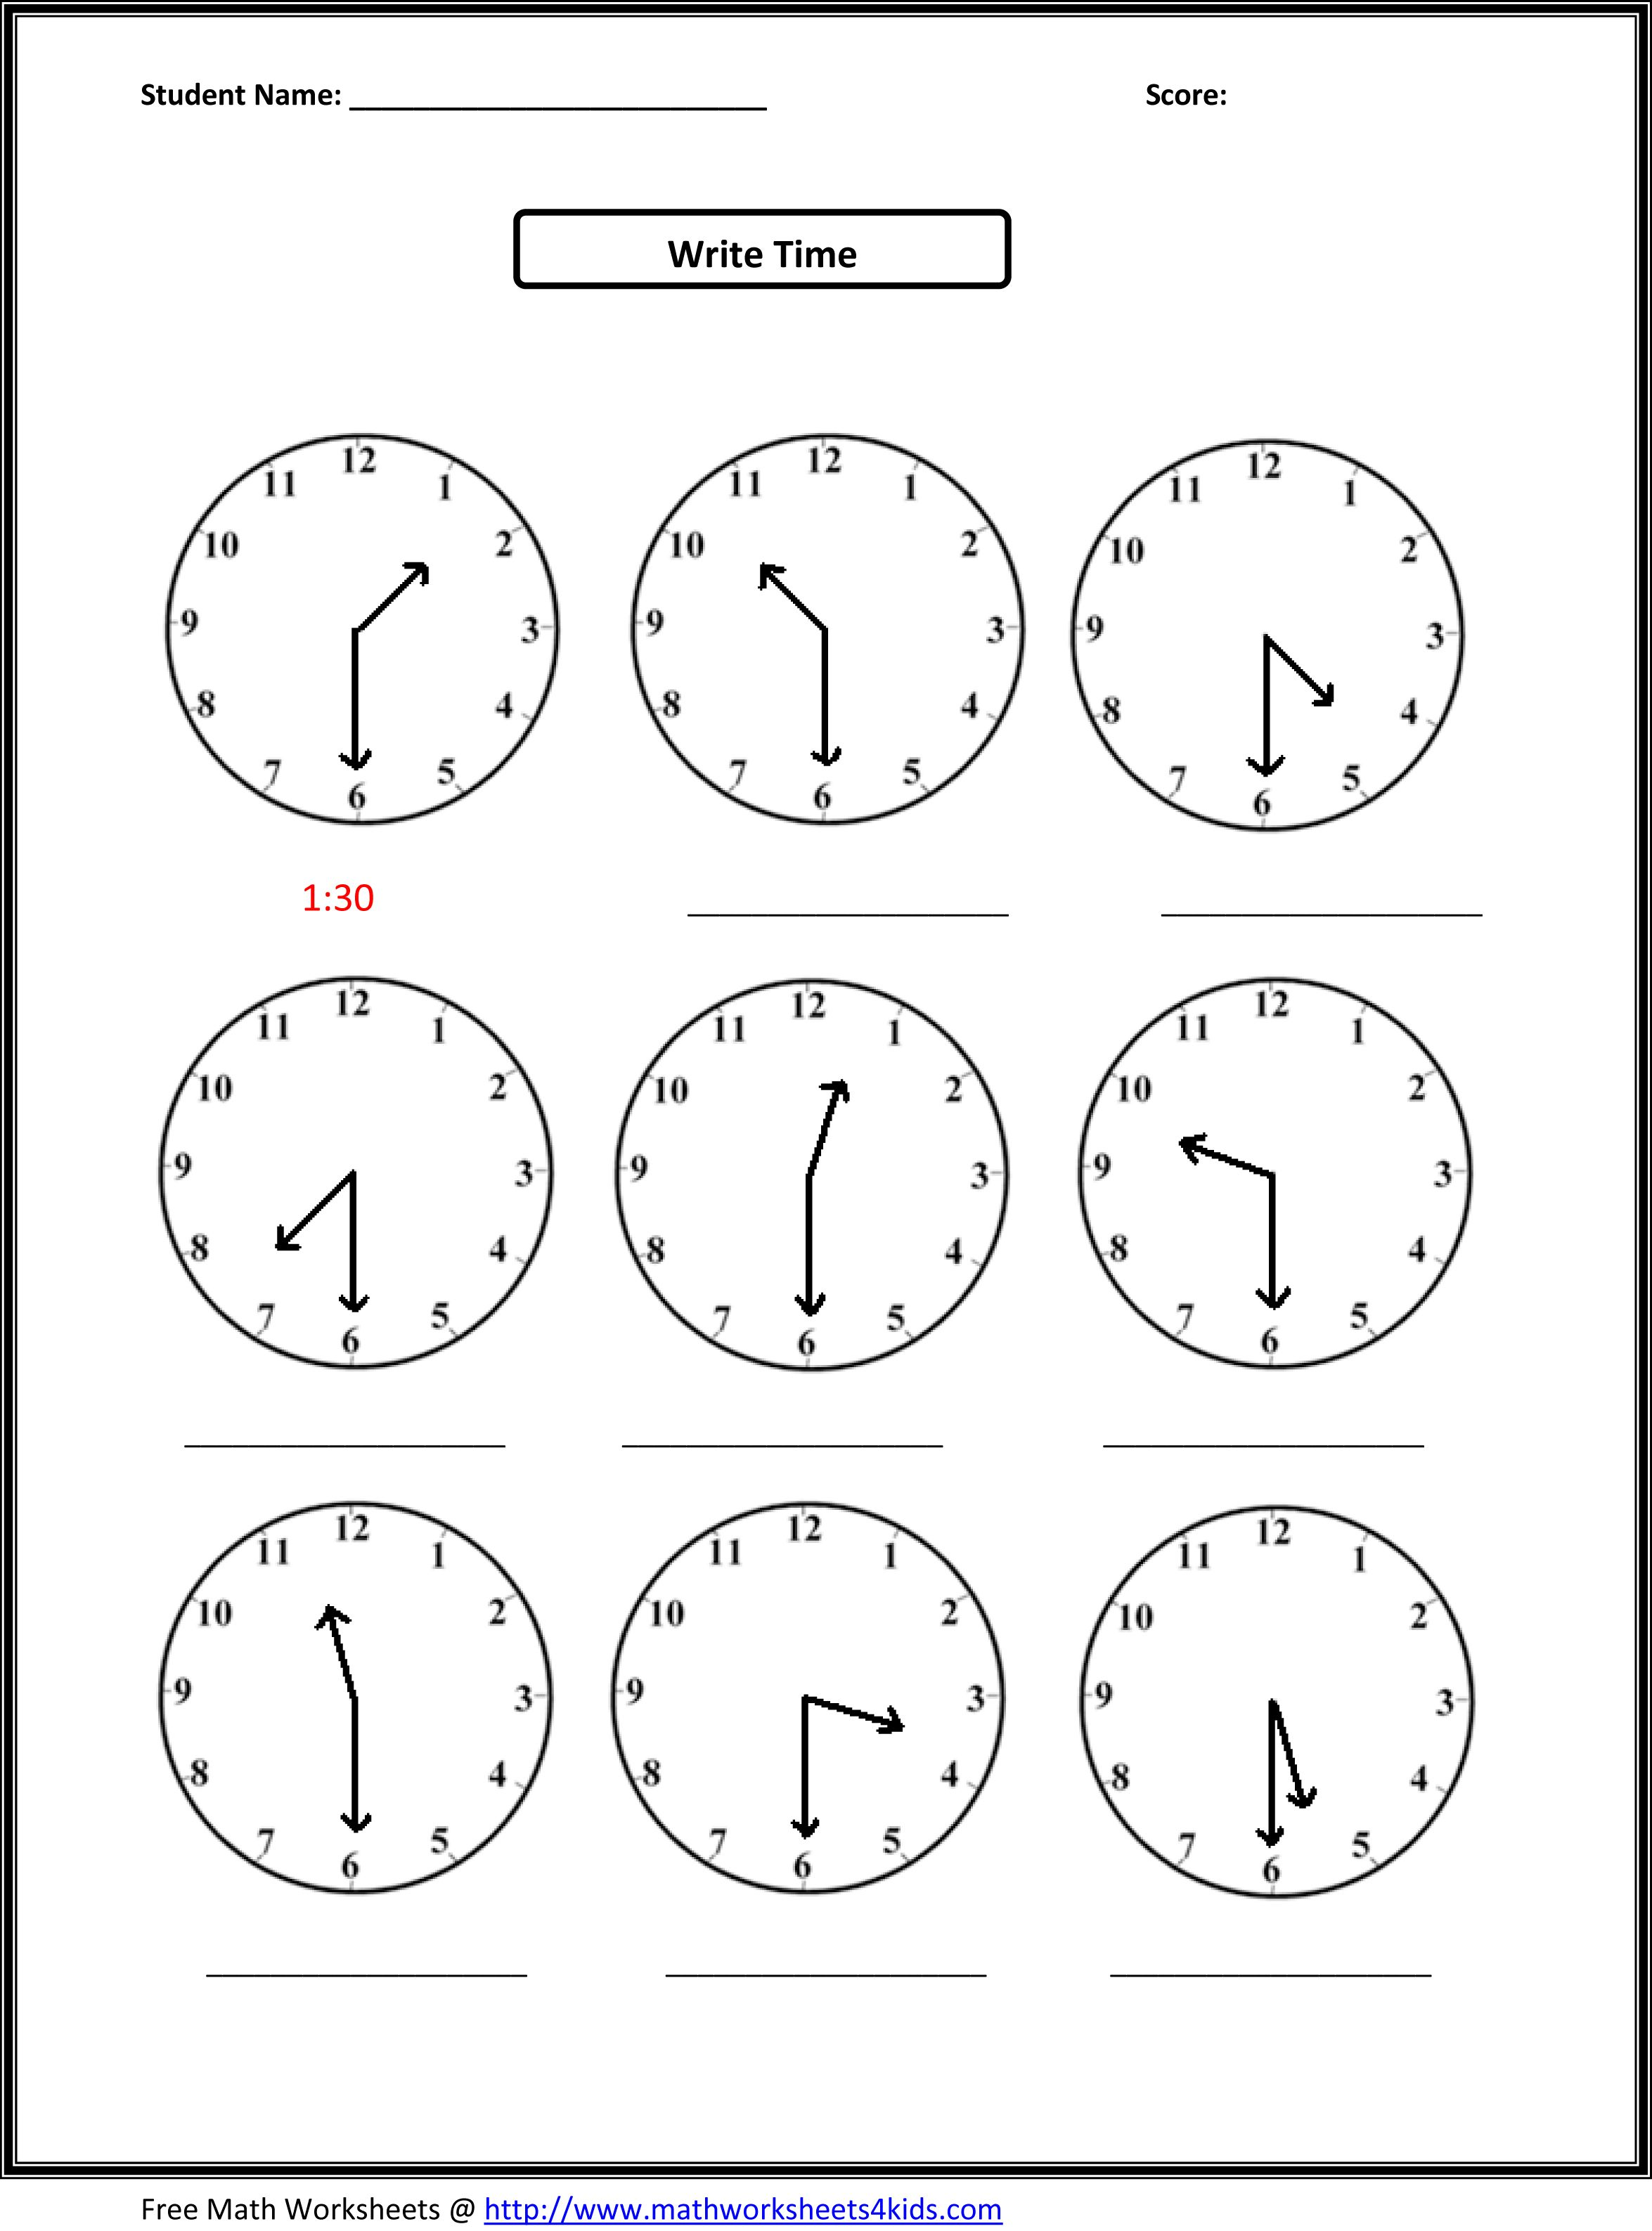 Proatmealus  Fascinating Worksheet On Time For Grade   Reocurent With Magnificent Free Printable Telling Time Worksheets Nd Grade  Reocurent With Delightful Th Grade Vocabulary Worksheets Also Two Step Equations Word Problems Worksheet In Addition Glencoe Mcgraw Hill Algebra  Worksheet Answers And Merit Badges Worksheets As Well As Planet Earth Pole To Pole Worksheet Additionally Opposite Worksheets From Reocurentcom With Proatmealus  Magnificent Worksheet On Time For Grade   Reocurent With Delightful Free Printable Telling Time Worksheets Nd Grade  Reocurent And Fascinating Th Grade Vocabulary Worksheets Also Two Step Equations Word Problems Worksheet In Addition Glencoe Mcgraw Hill Algebra  Worksheet Answers From Reocurentcom